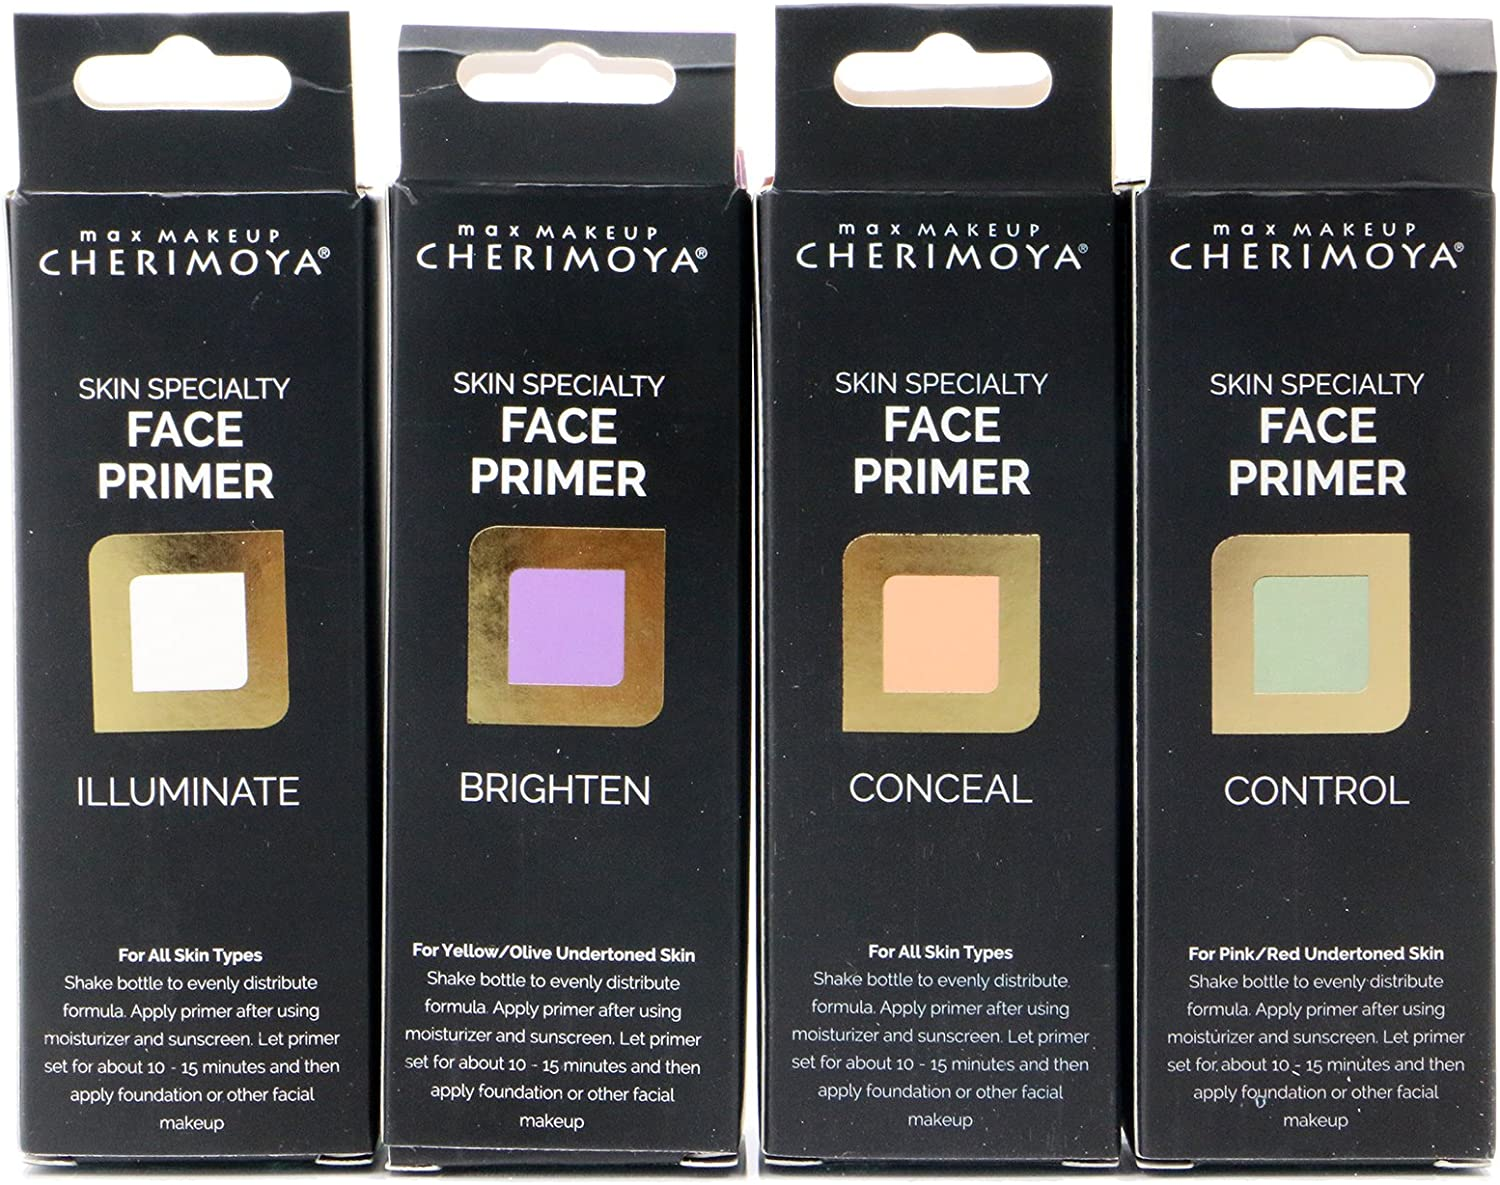 1pc Cherimoya Skin Specialty Face Primer For All Skin Types #PRM404 by Max Makeup Cherimoya: Amazon.es: Belleza